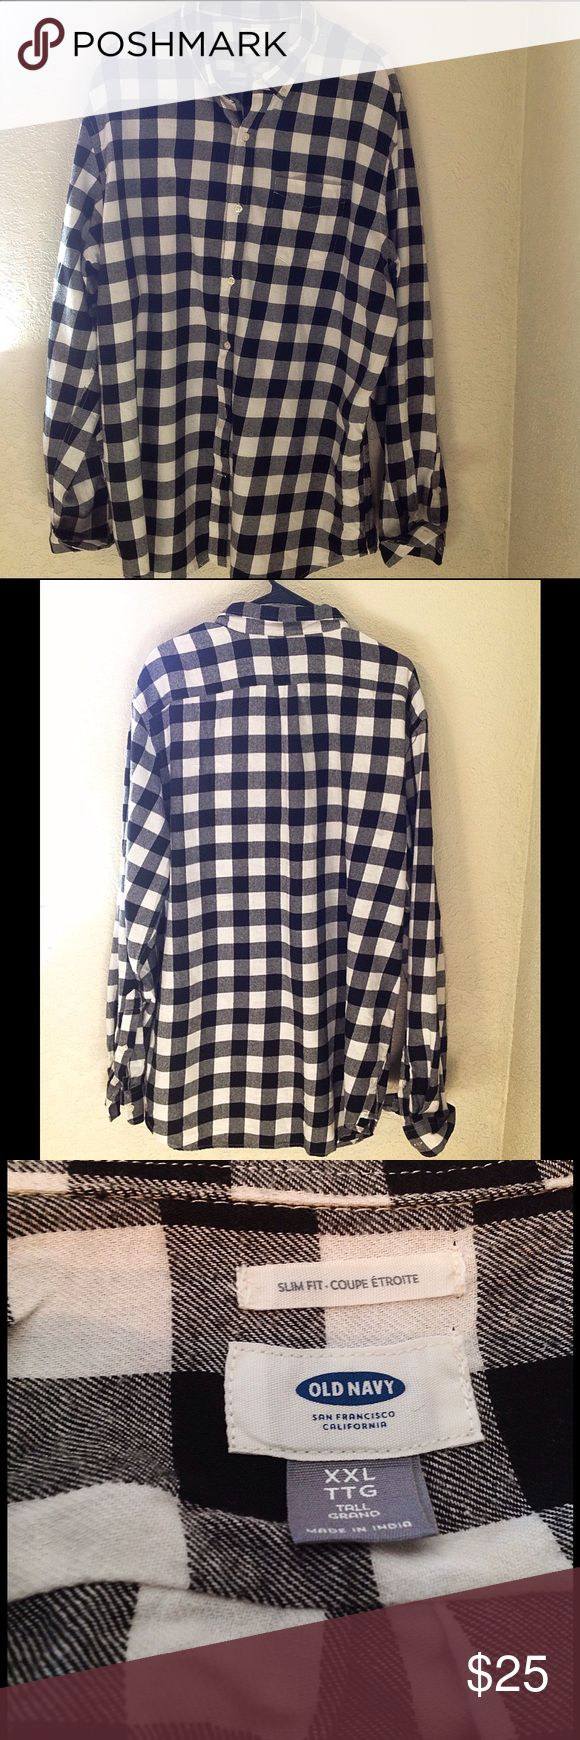 Old Navy Slim-Fit Flannel Shirt for Men NWOT Slim-Fit Flannel Shirt for Men Pointed collar Long sleeves with buttoned cuffs. Seamed back. Soft, medium-weight cotton. Size 2XL Tall Old Navy Shirts Casual Button Down Shirts